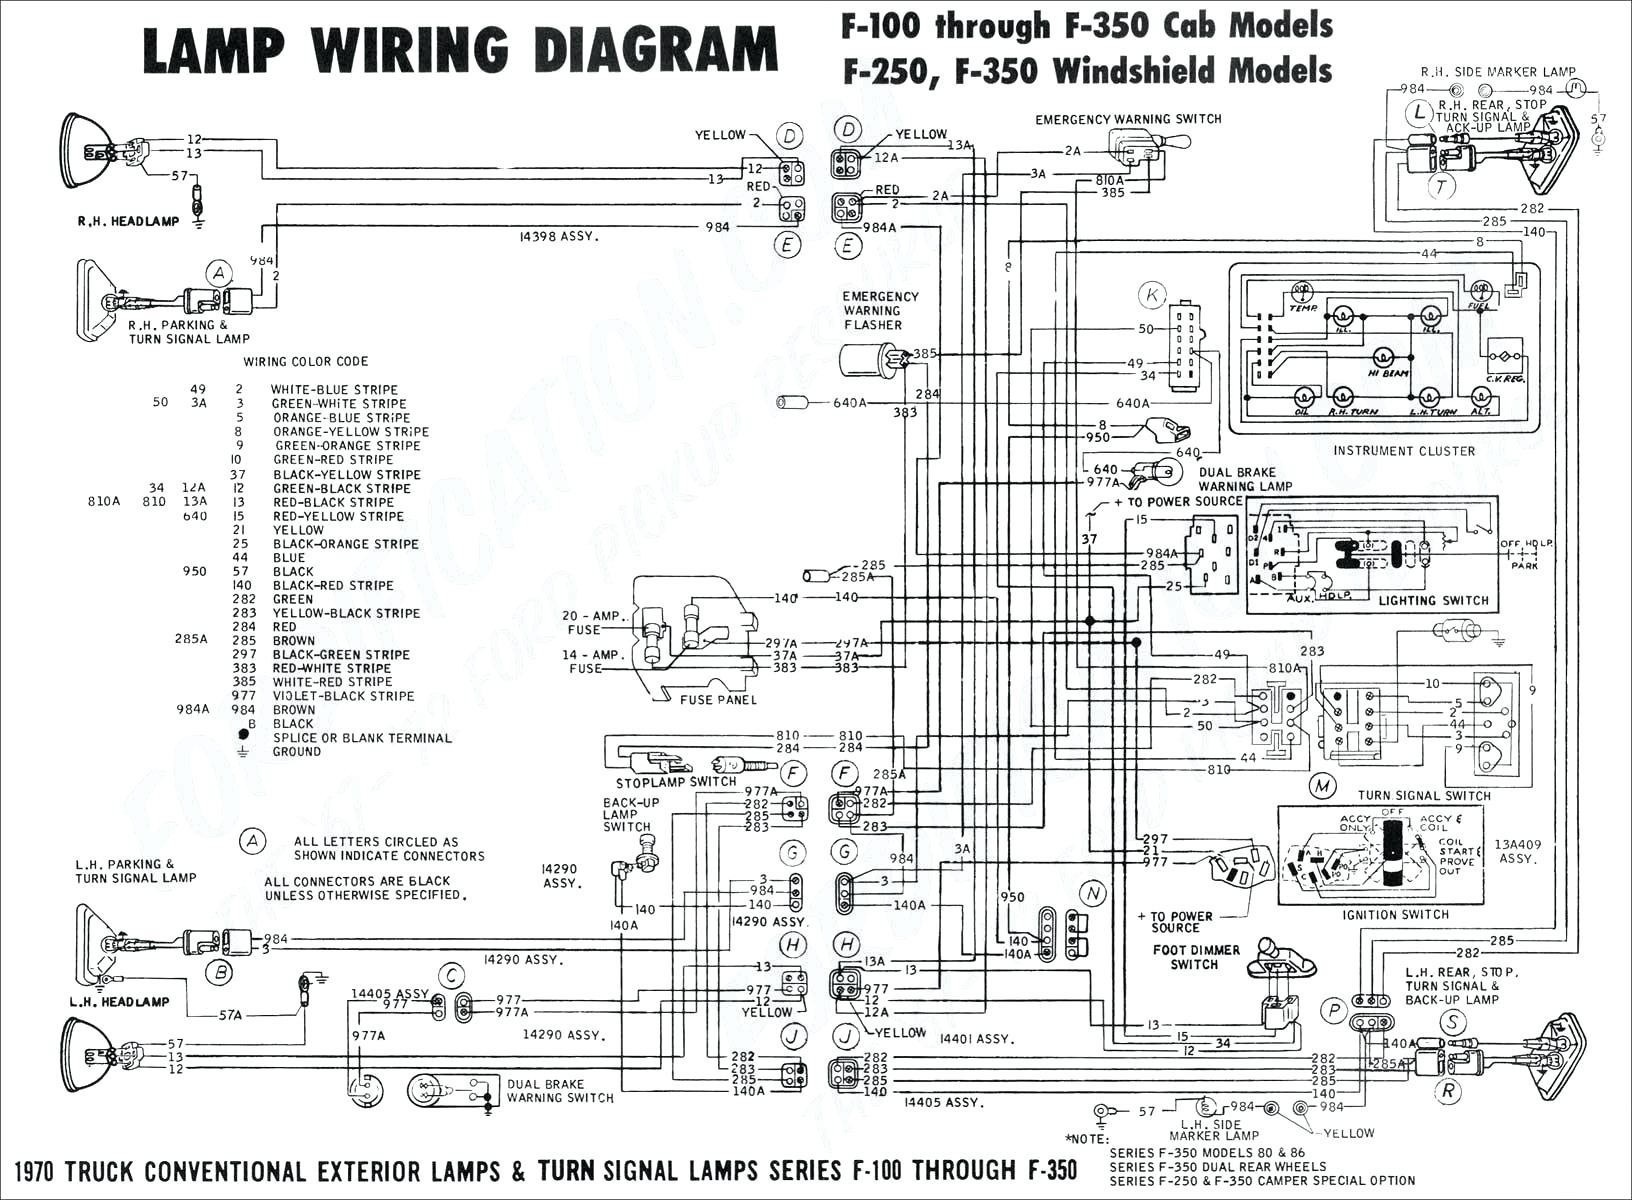 Wiring Diagram for Bad Boy Buggy 2005 Durango Stereo Wiring Diagram Of Wiring Diagram for Bad Boy Buggy